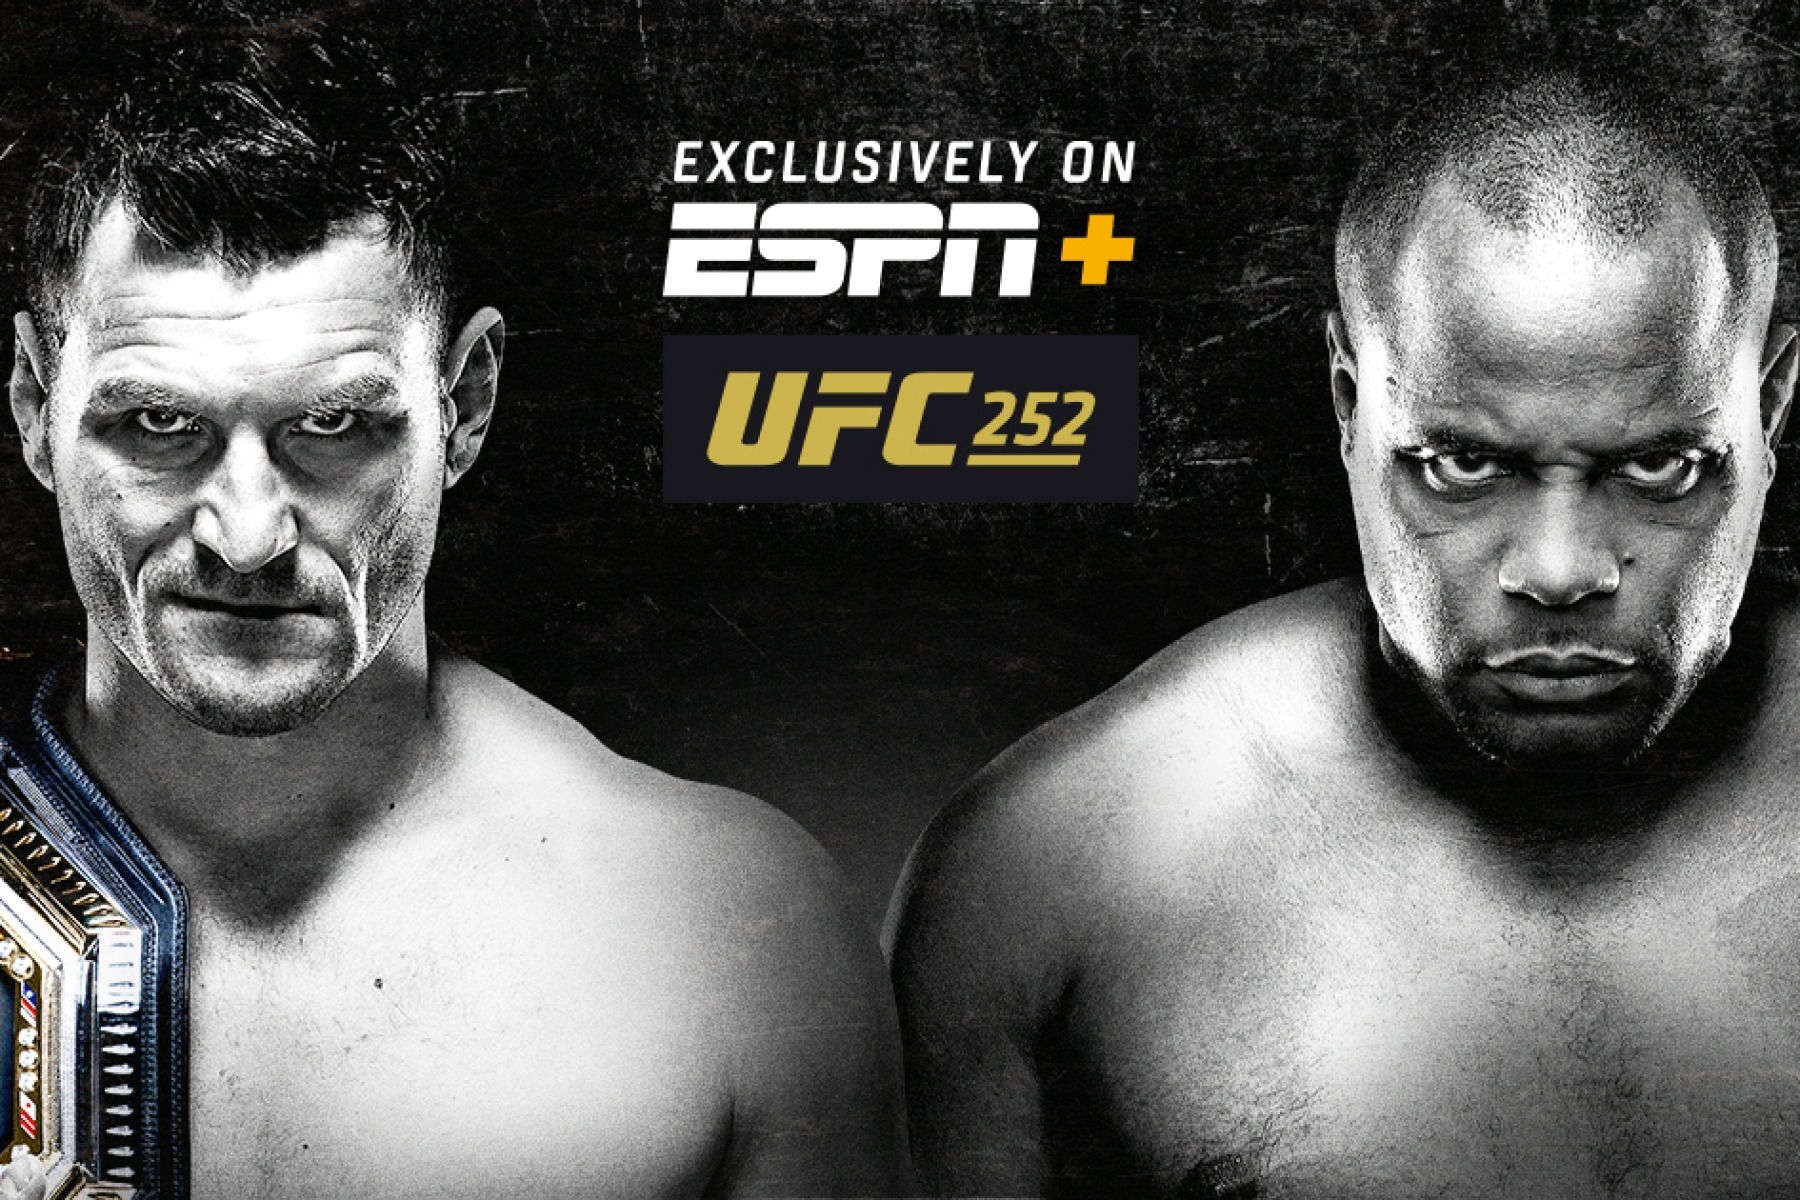 How To Watch Ufc 252 Miocic Vs Cormier Live Stream Online On Espn Rolling Stone